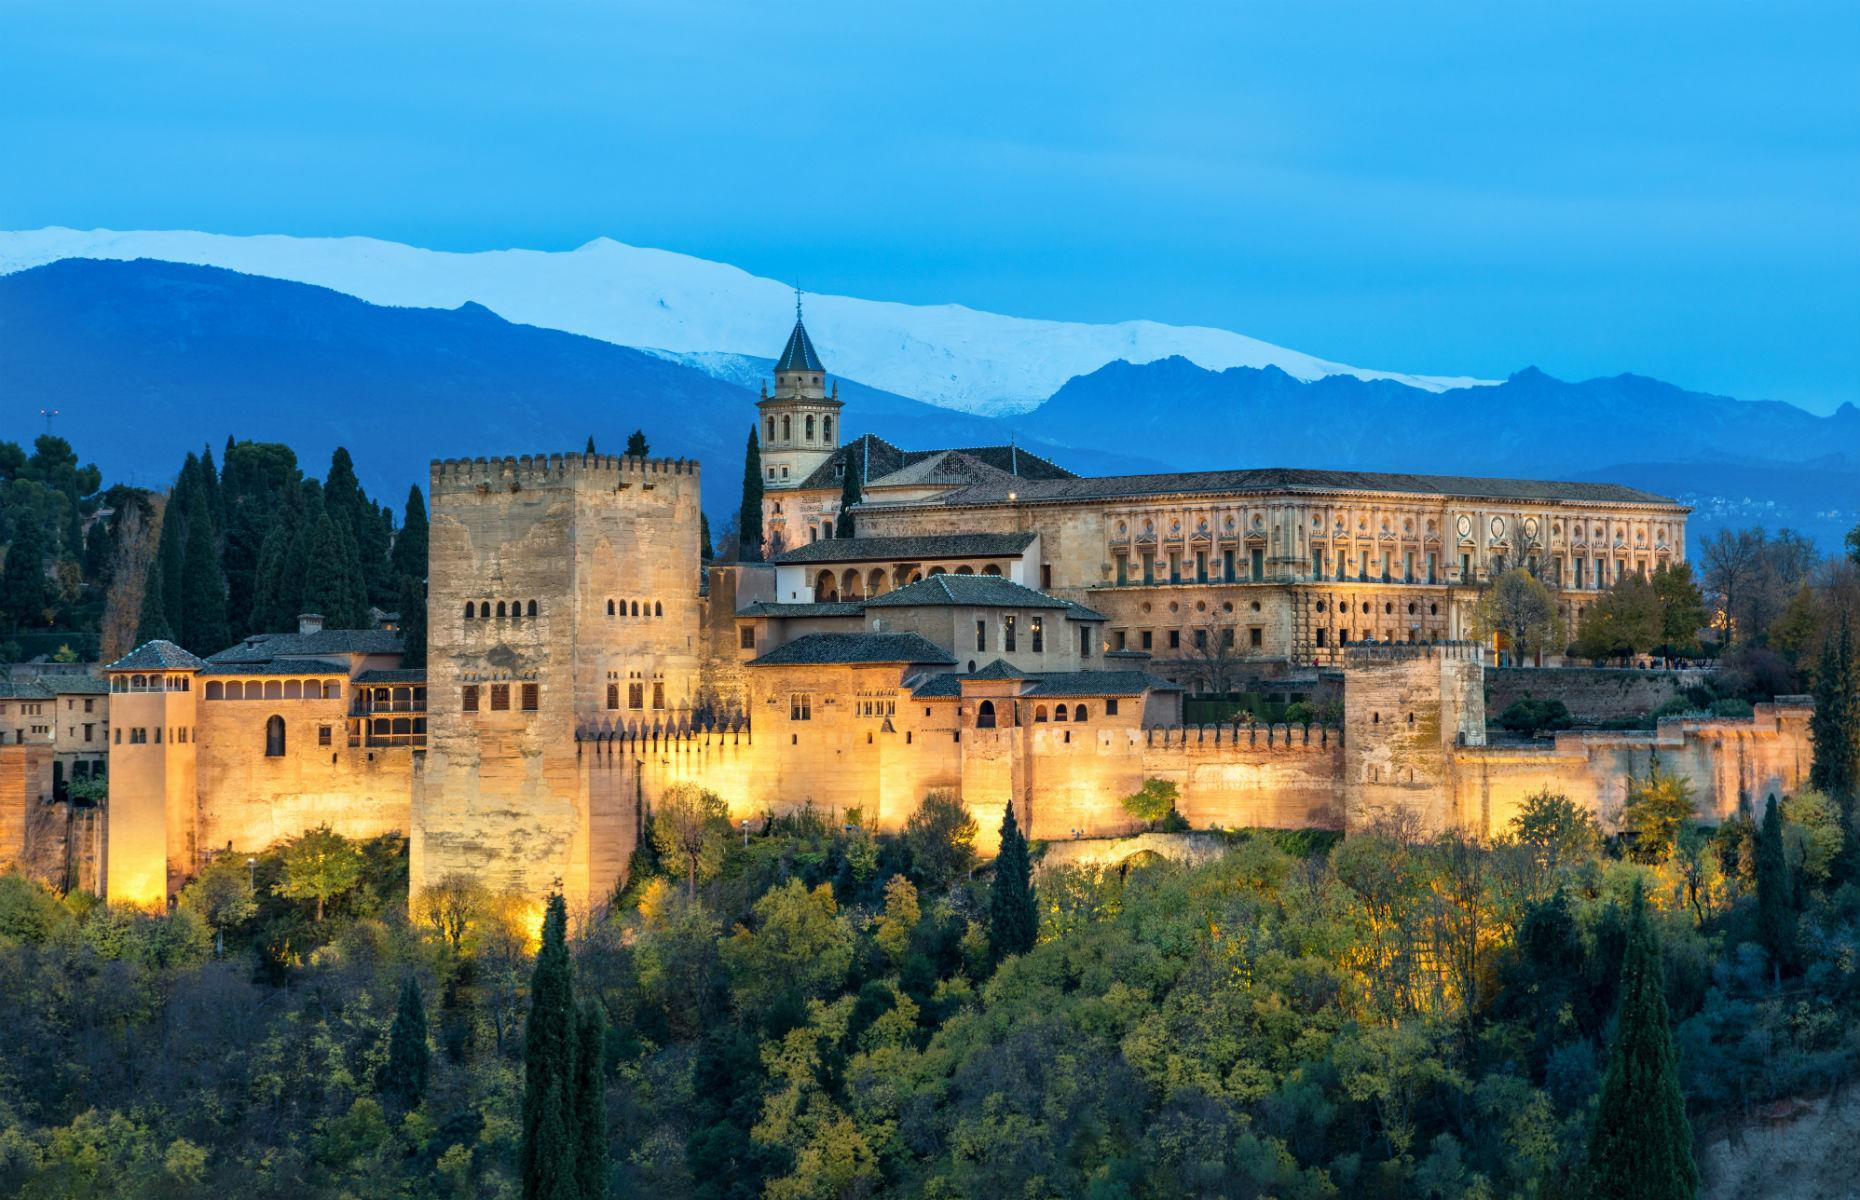 Slide 32 of 61: Granada's impressive Alhambra was built during Spain's Moorish period from the mid-13th century. The fortress, perched on a plateau above the city, served as a royal palace, and its exquisite gardens are laced with beautiful walkways and fountains.